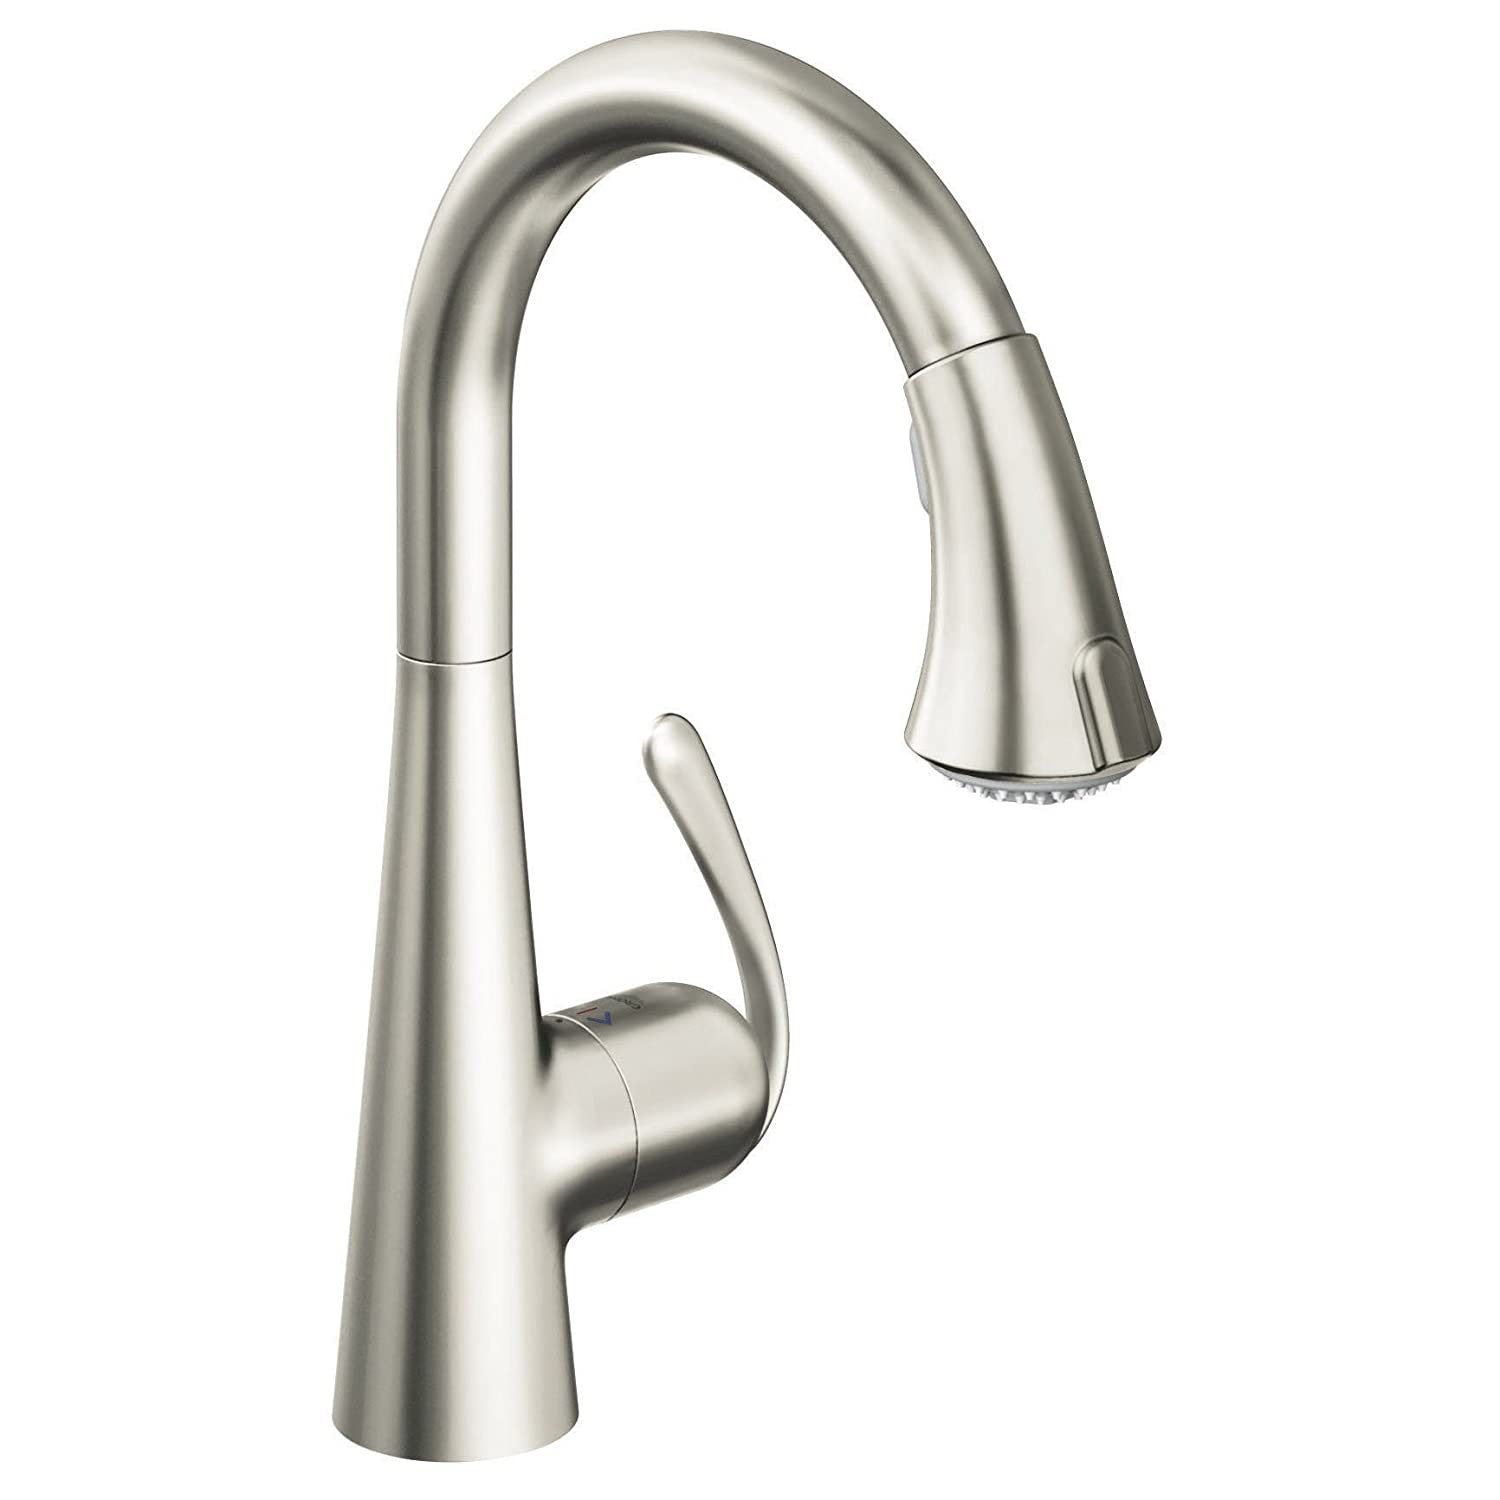 Grohe ladylux best pull down kitchen faucet